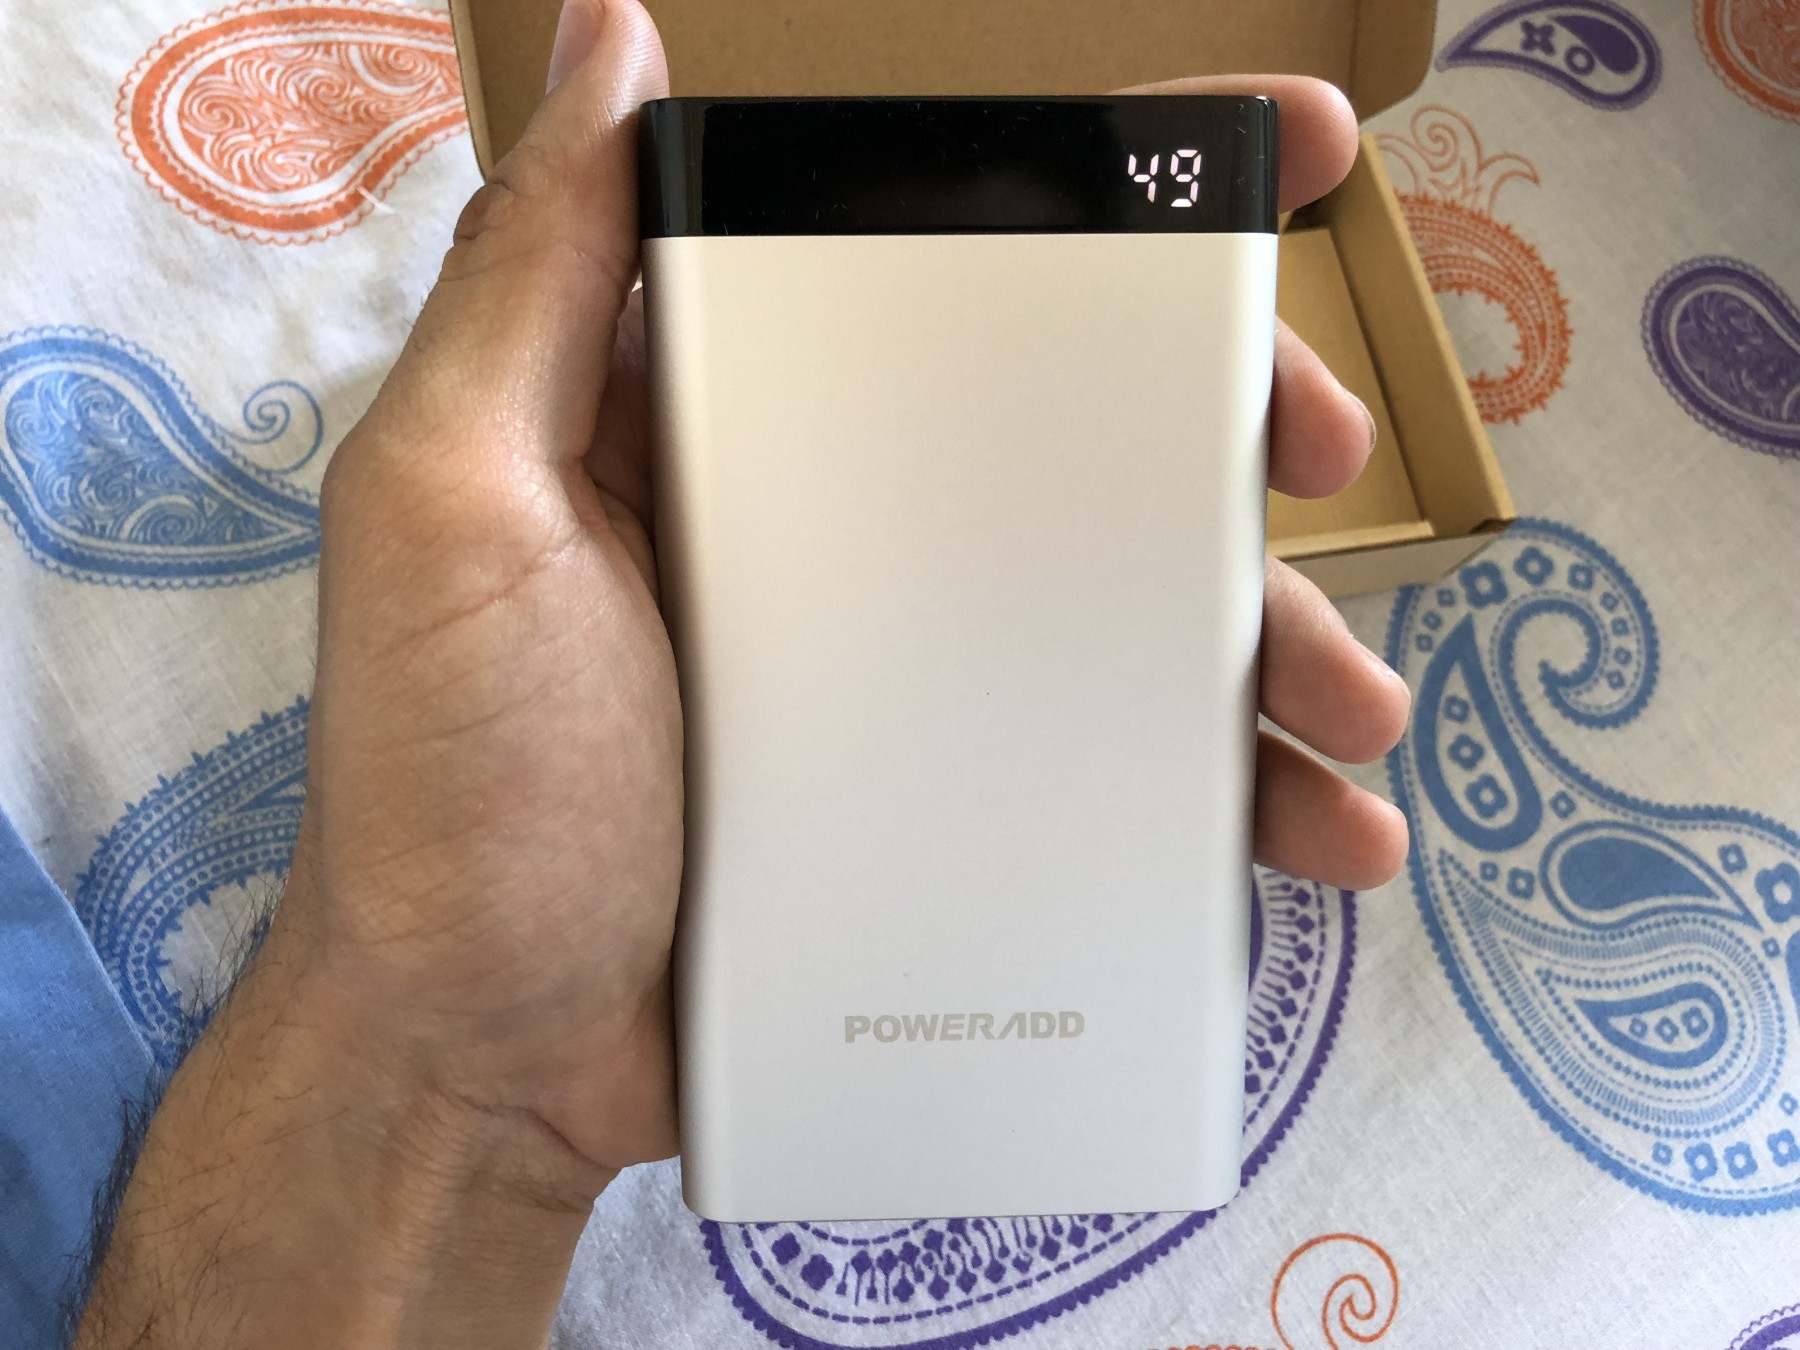 Perfecto power bank